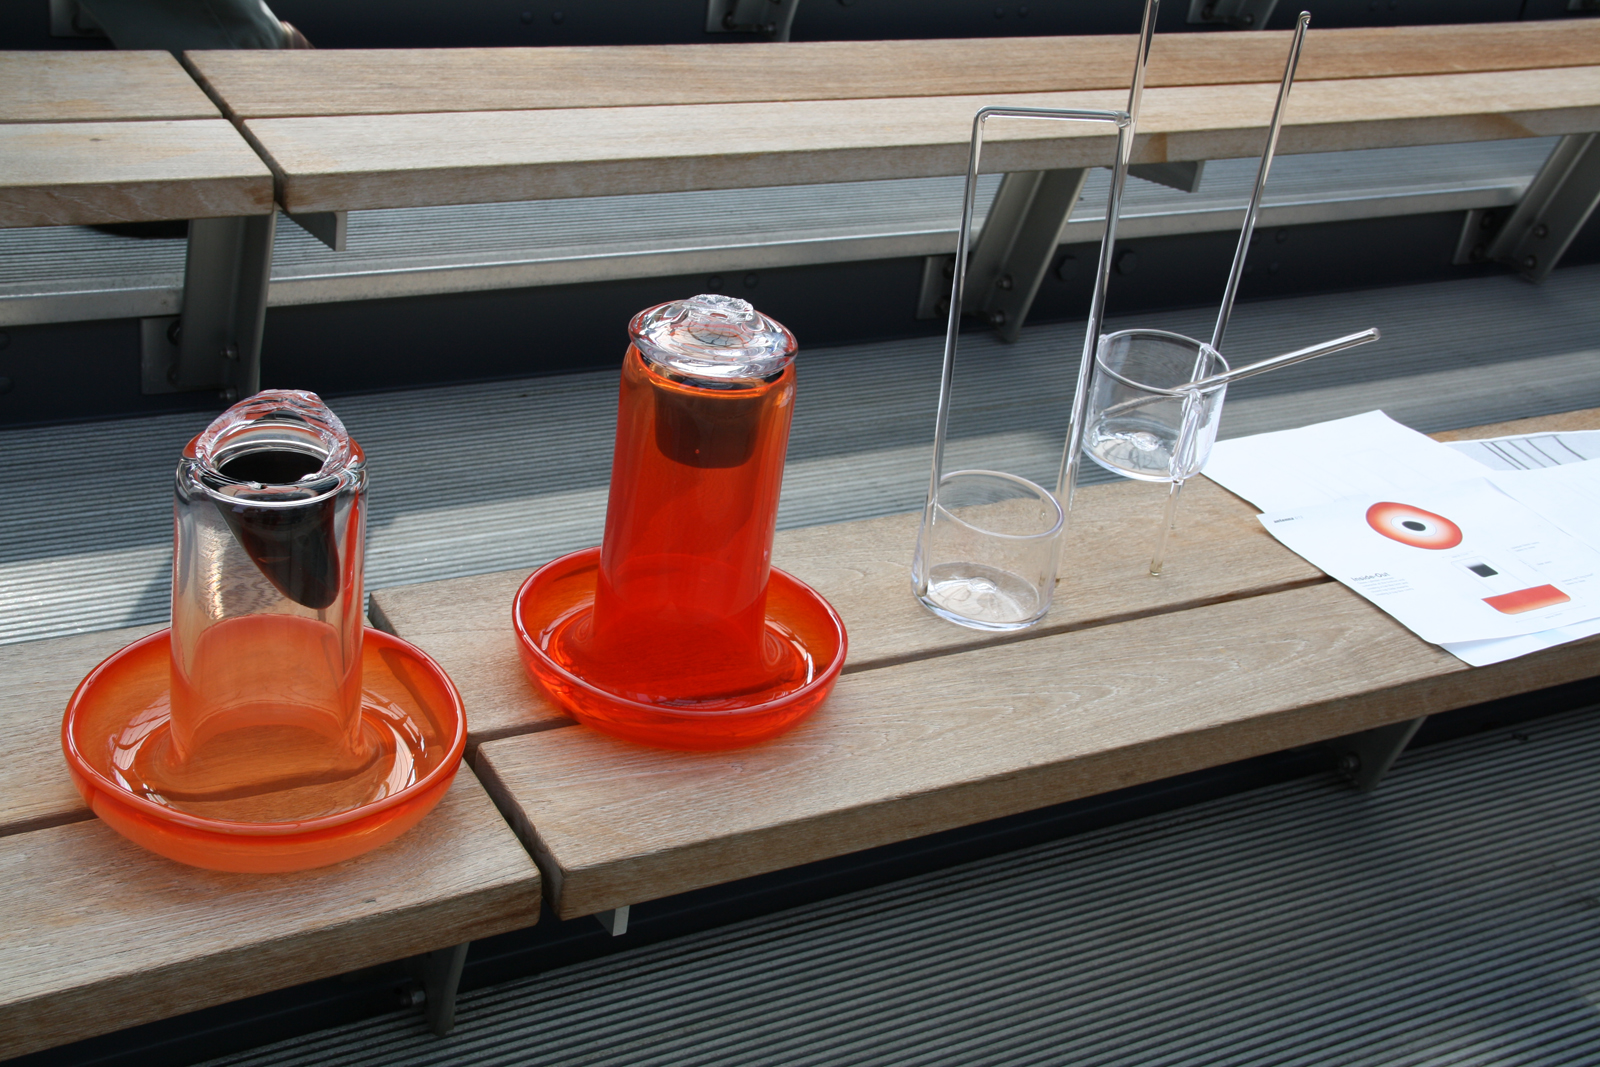 Design prototypes by Sigi Moeslinger and Masamichi Udagawa for GlassLab, June 2012